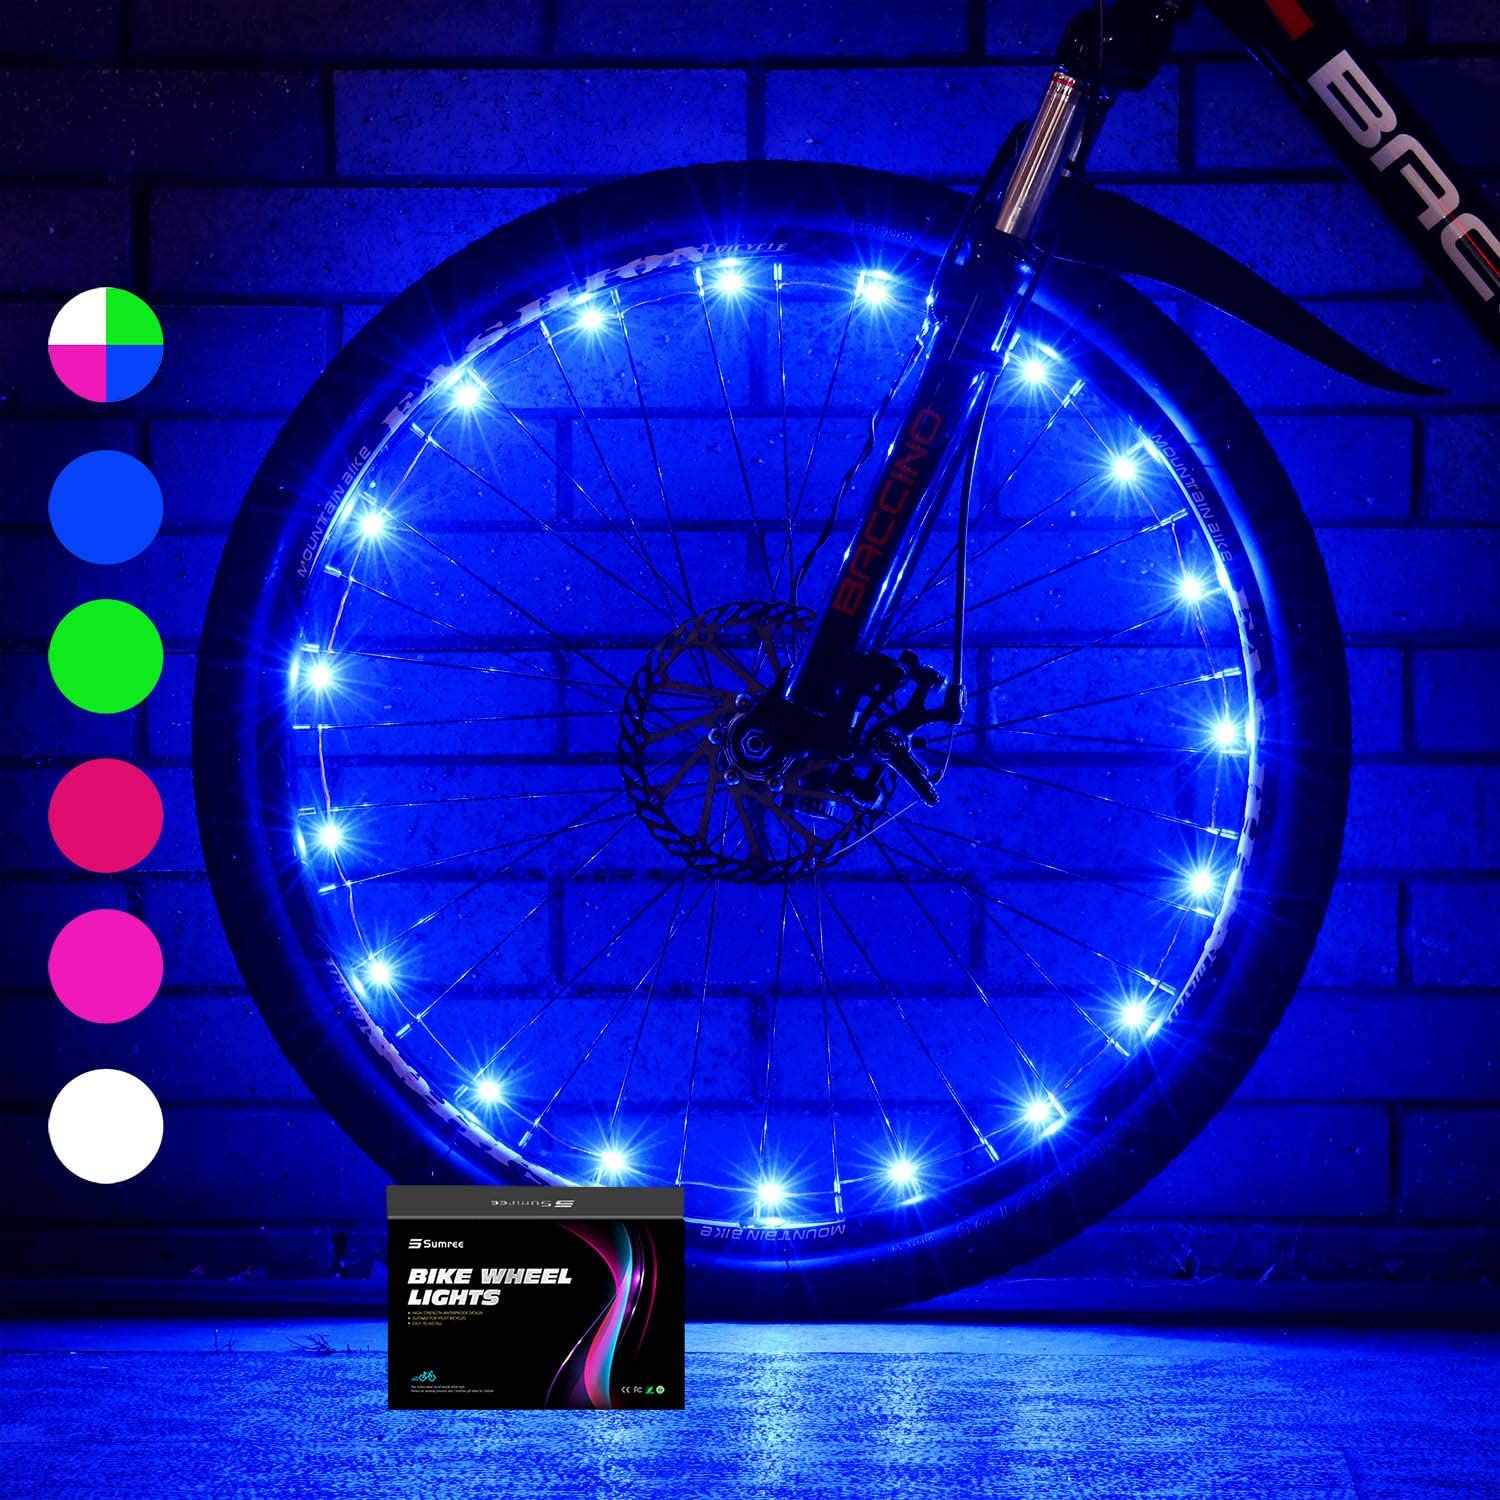 Sumree Bike Wheel Lights LED Bike Spoke Light Super Bright Cycling Bicycle Light with Batteries Included (1 Wheel Pack)